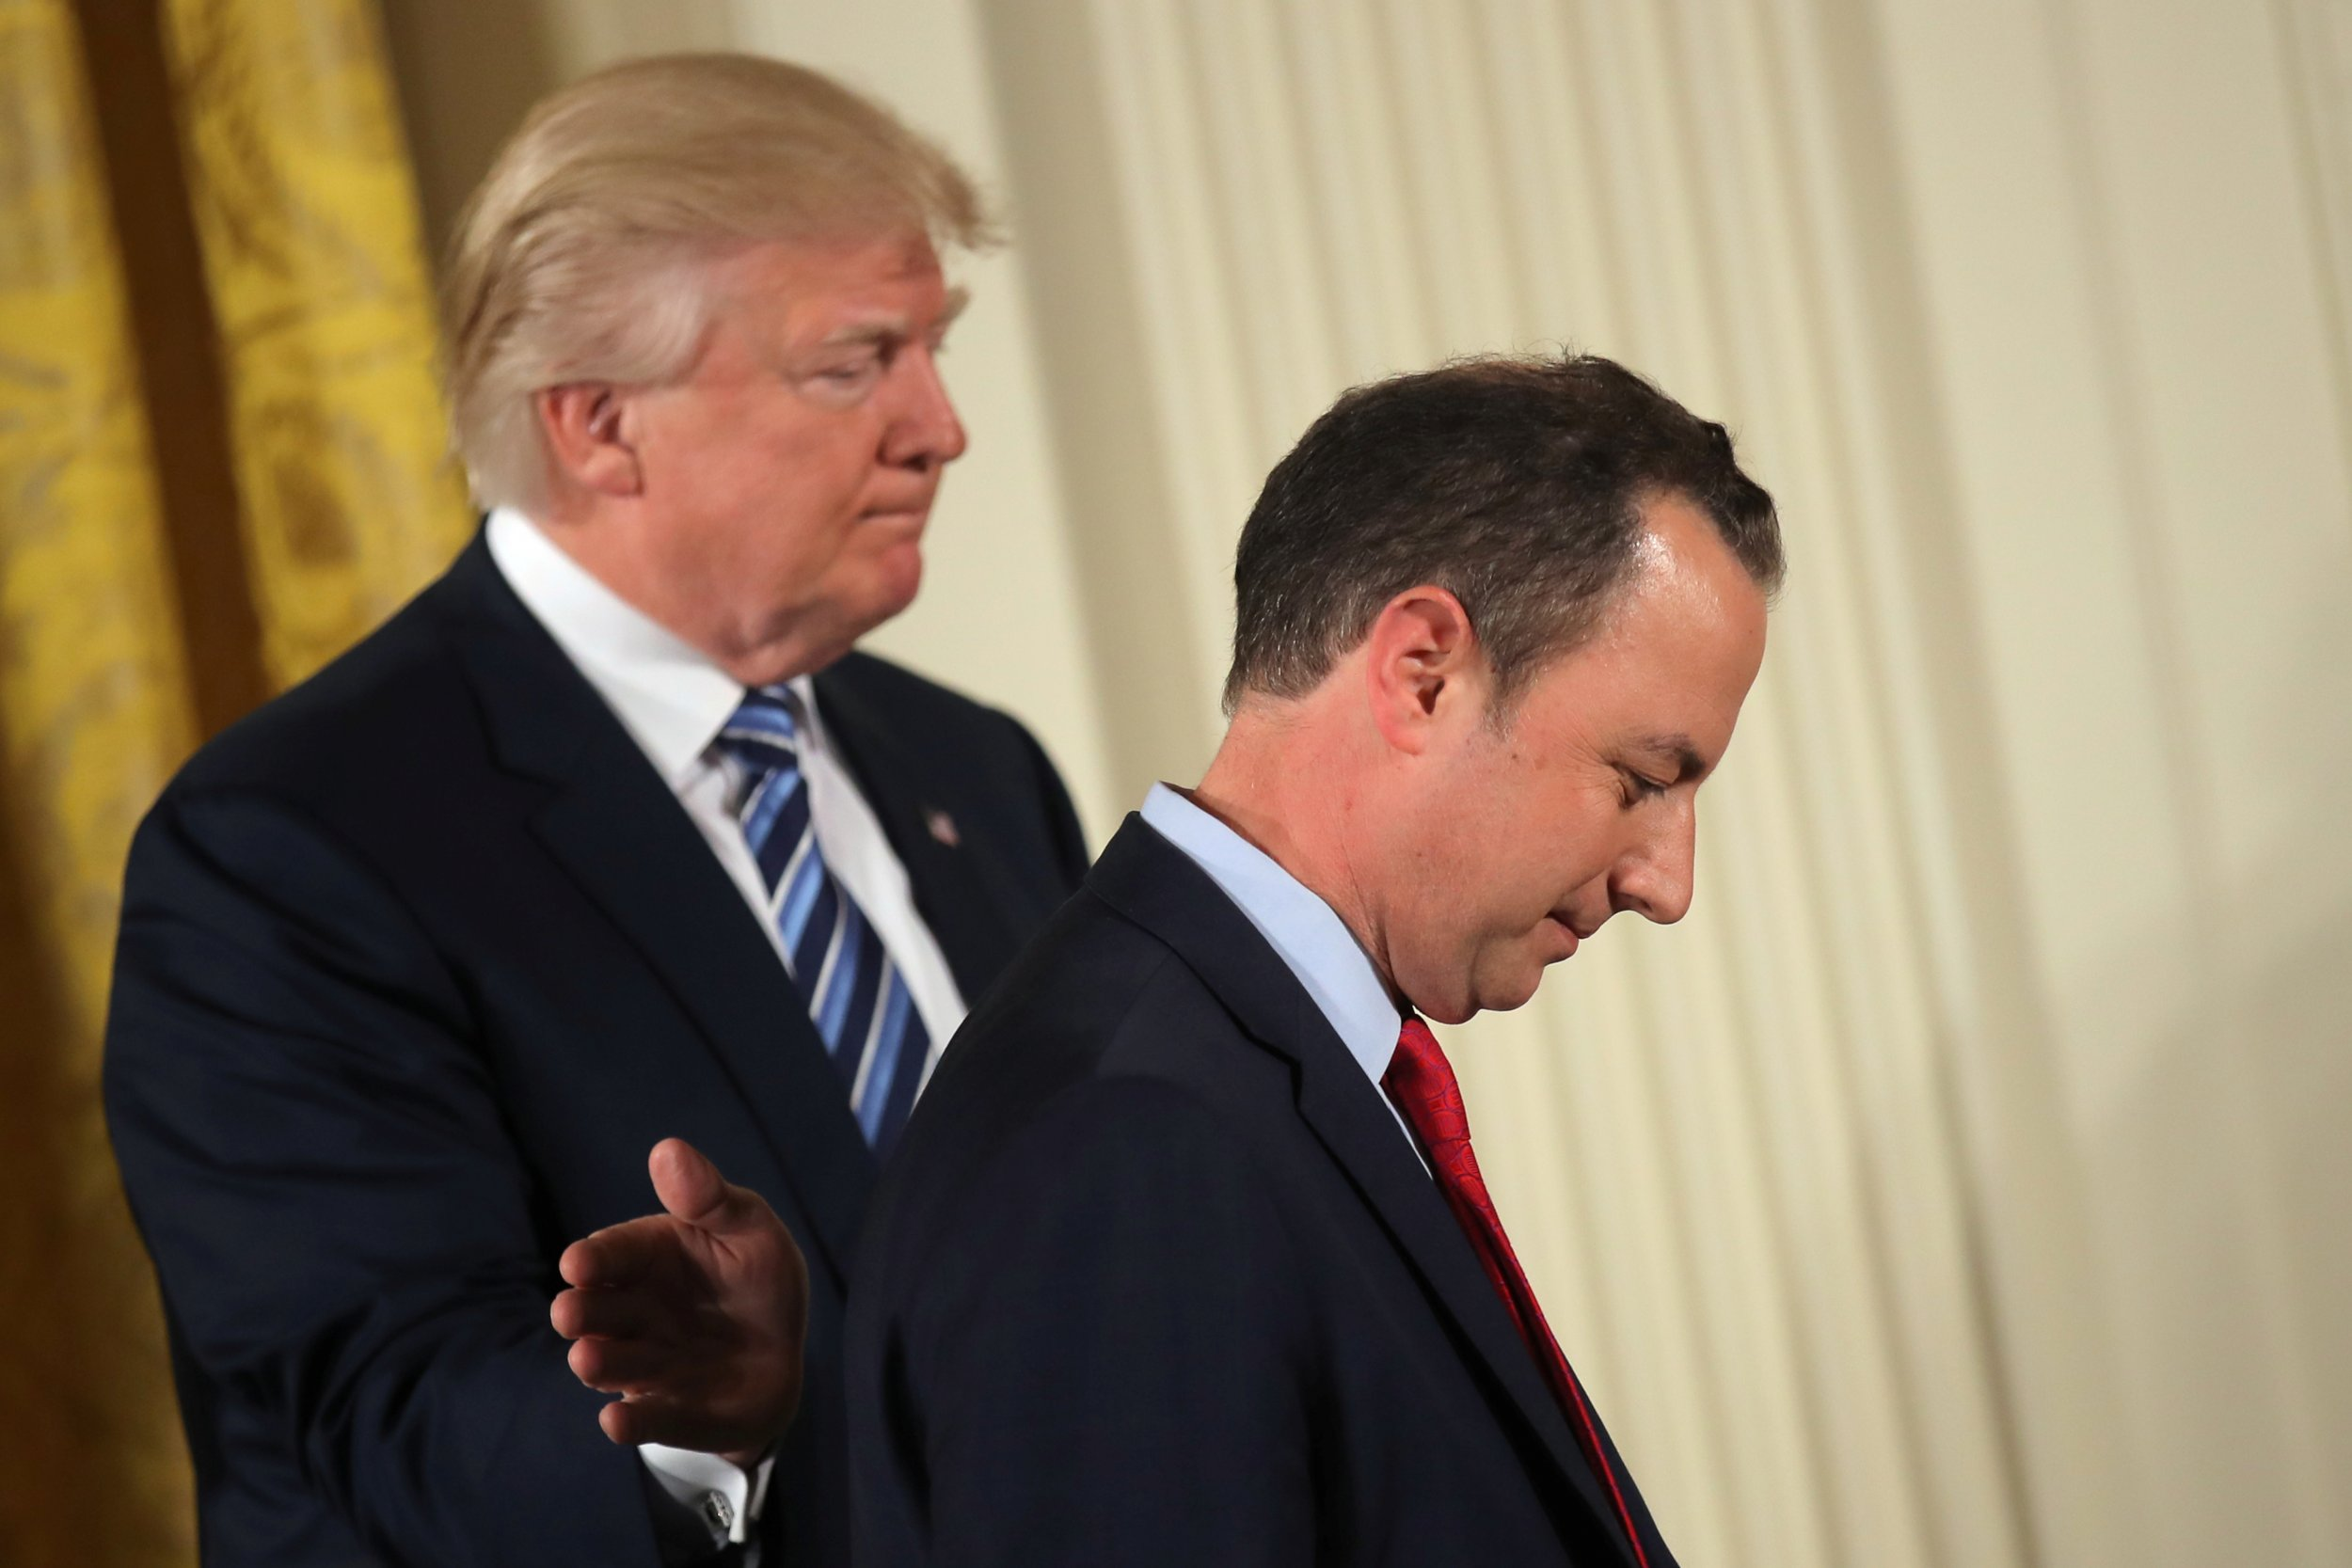 Oh snap! Donnie Two Scoops unfollows Reince Priebus on Twitter. There can be no bigger insult in Trump World.